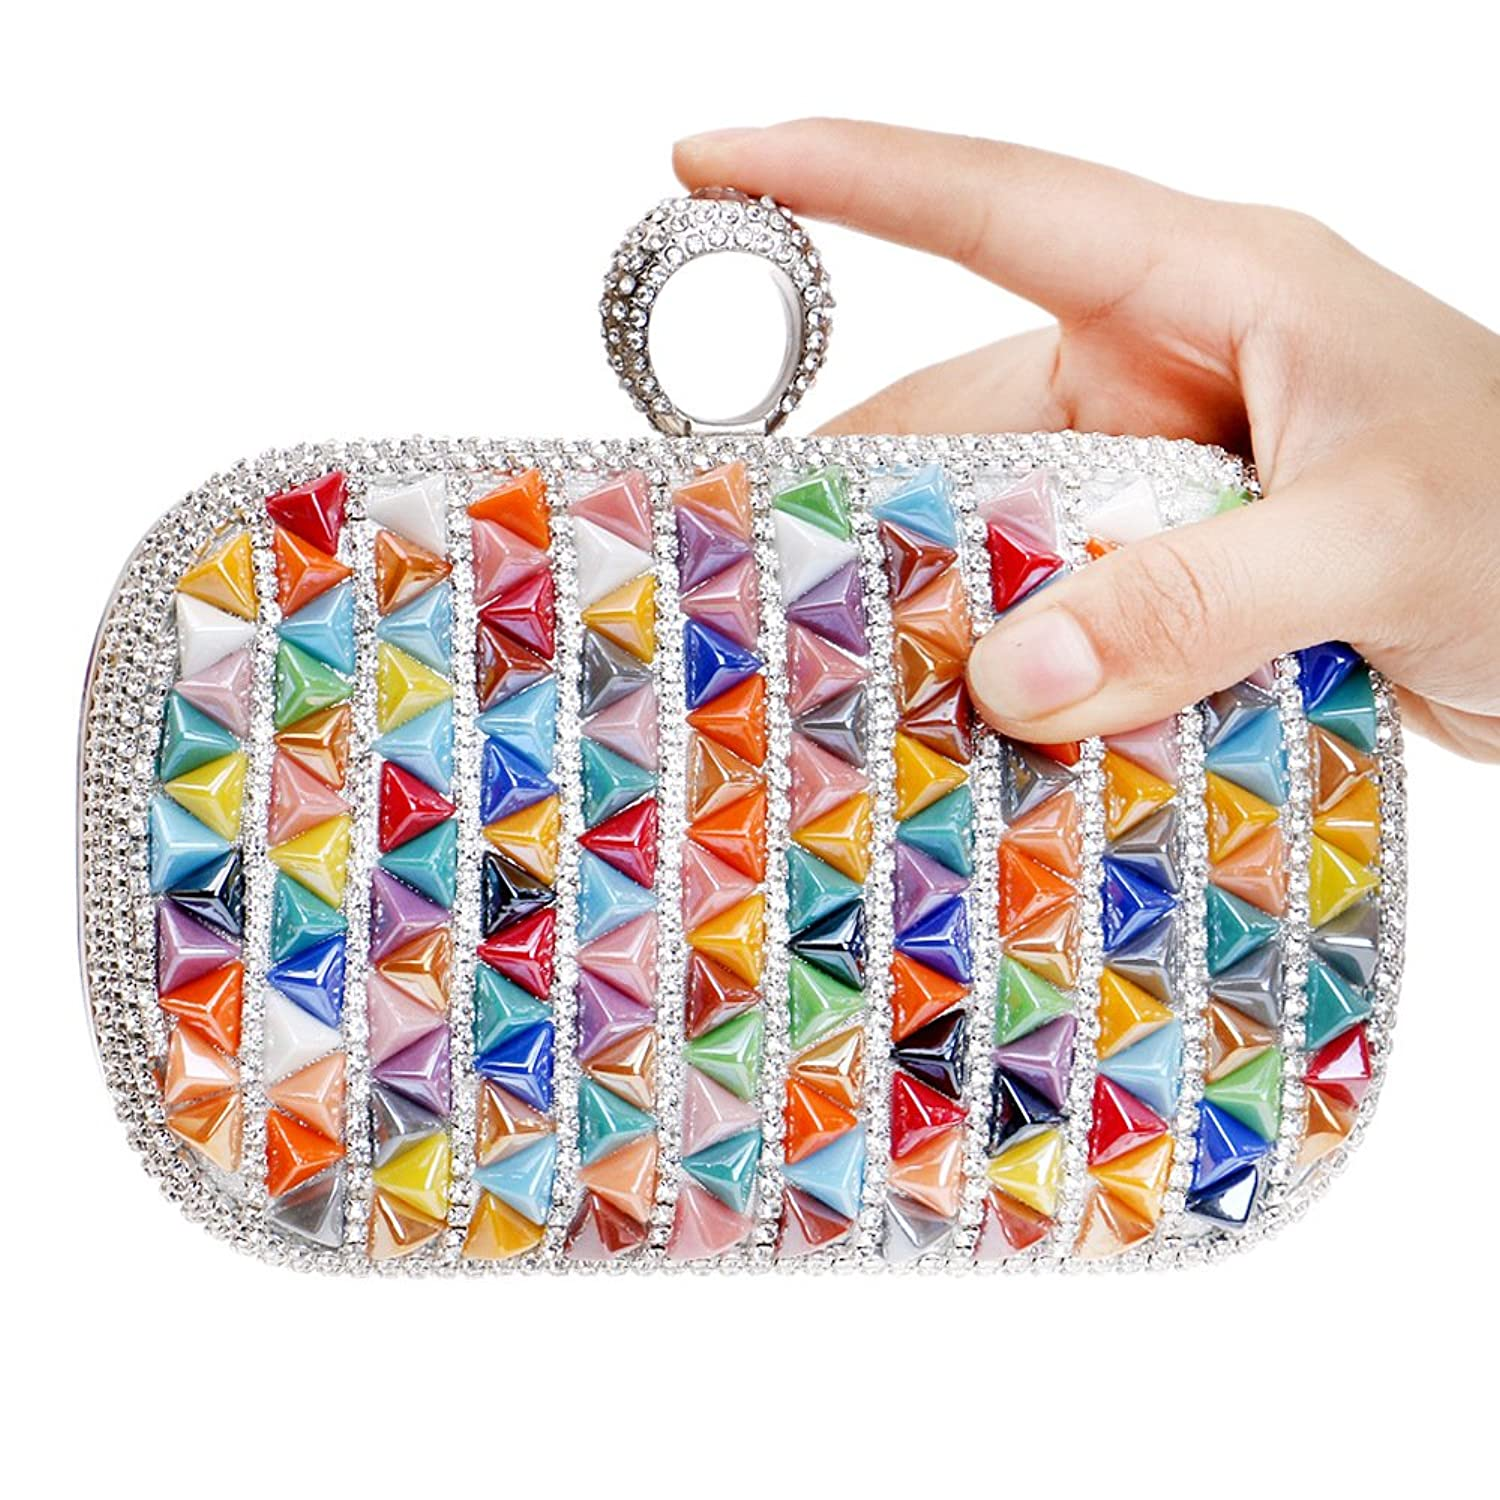 Mlotus Colorful Ladies One Ring Party Handbag Purse Crystal Pleated Bridal Evening Clutch